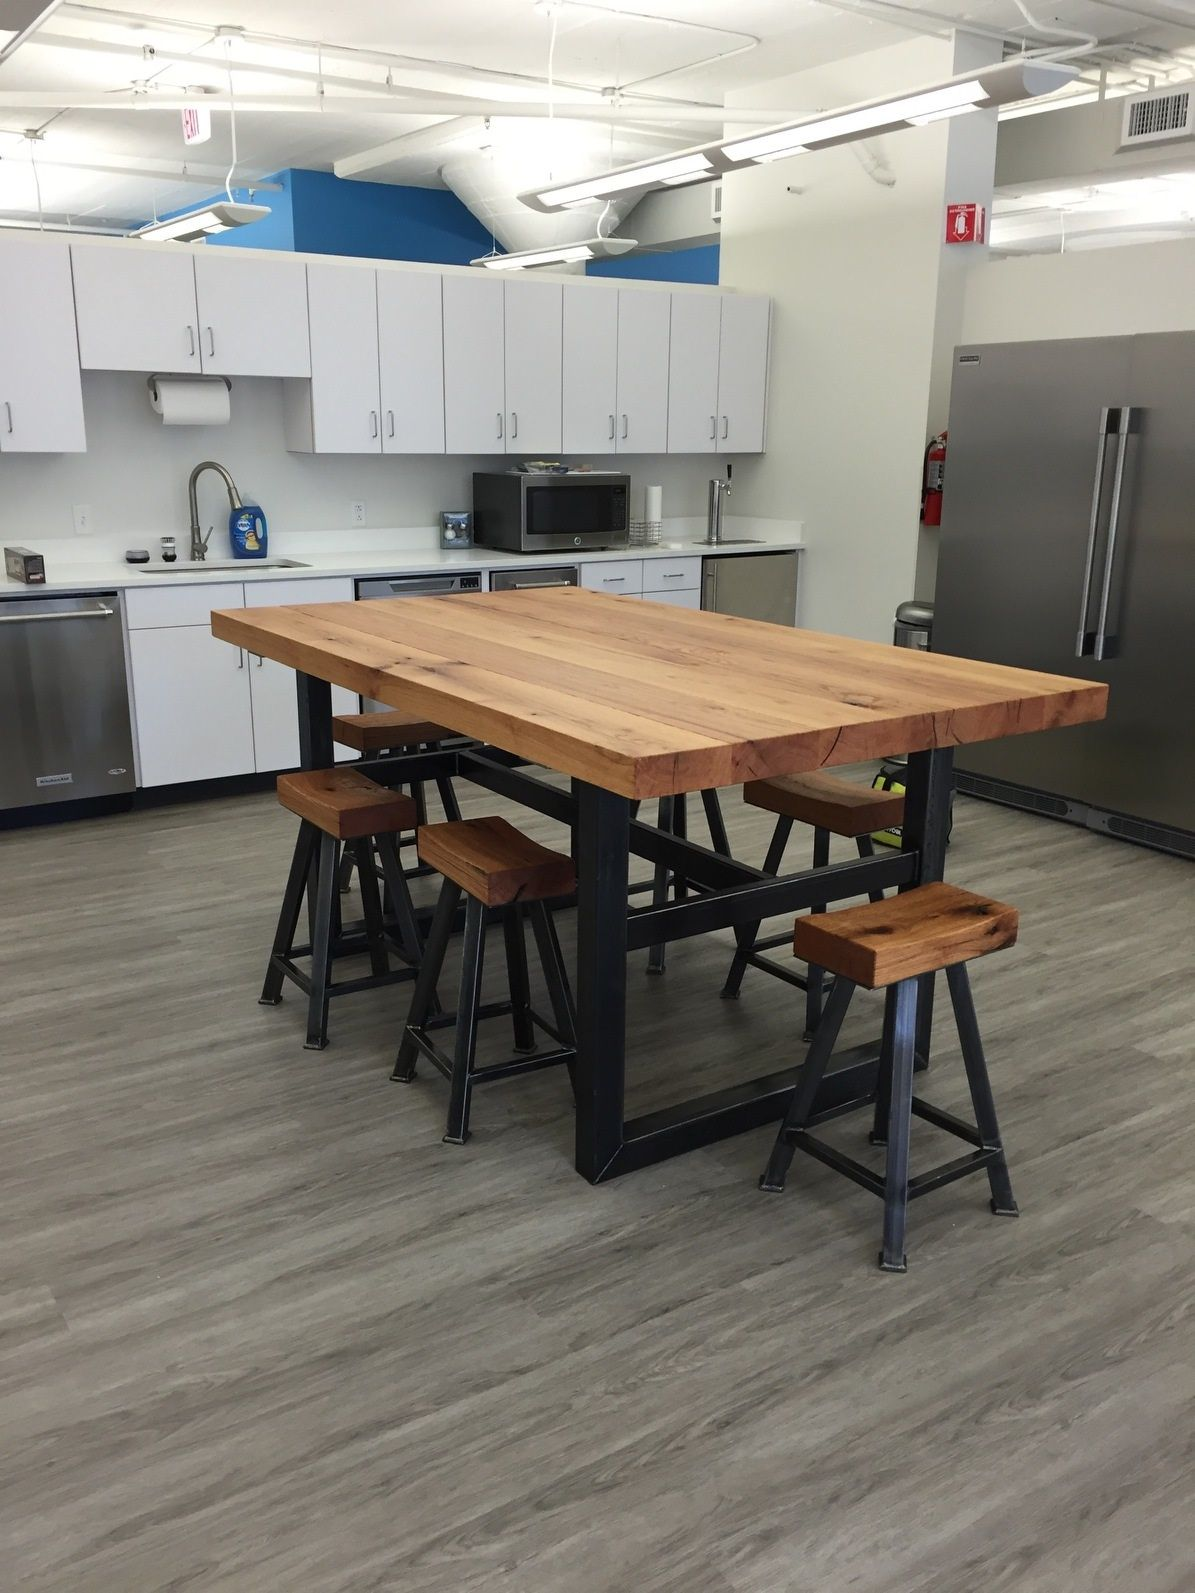 Custom kitchen table w stools by freelance customs - Custom kitchen table ...